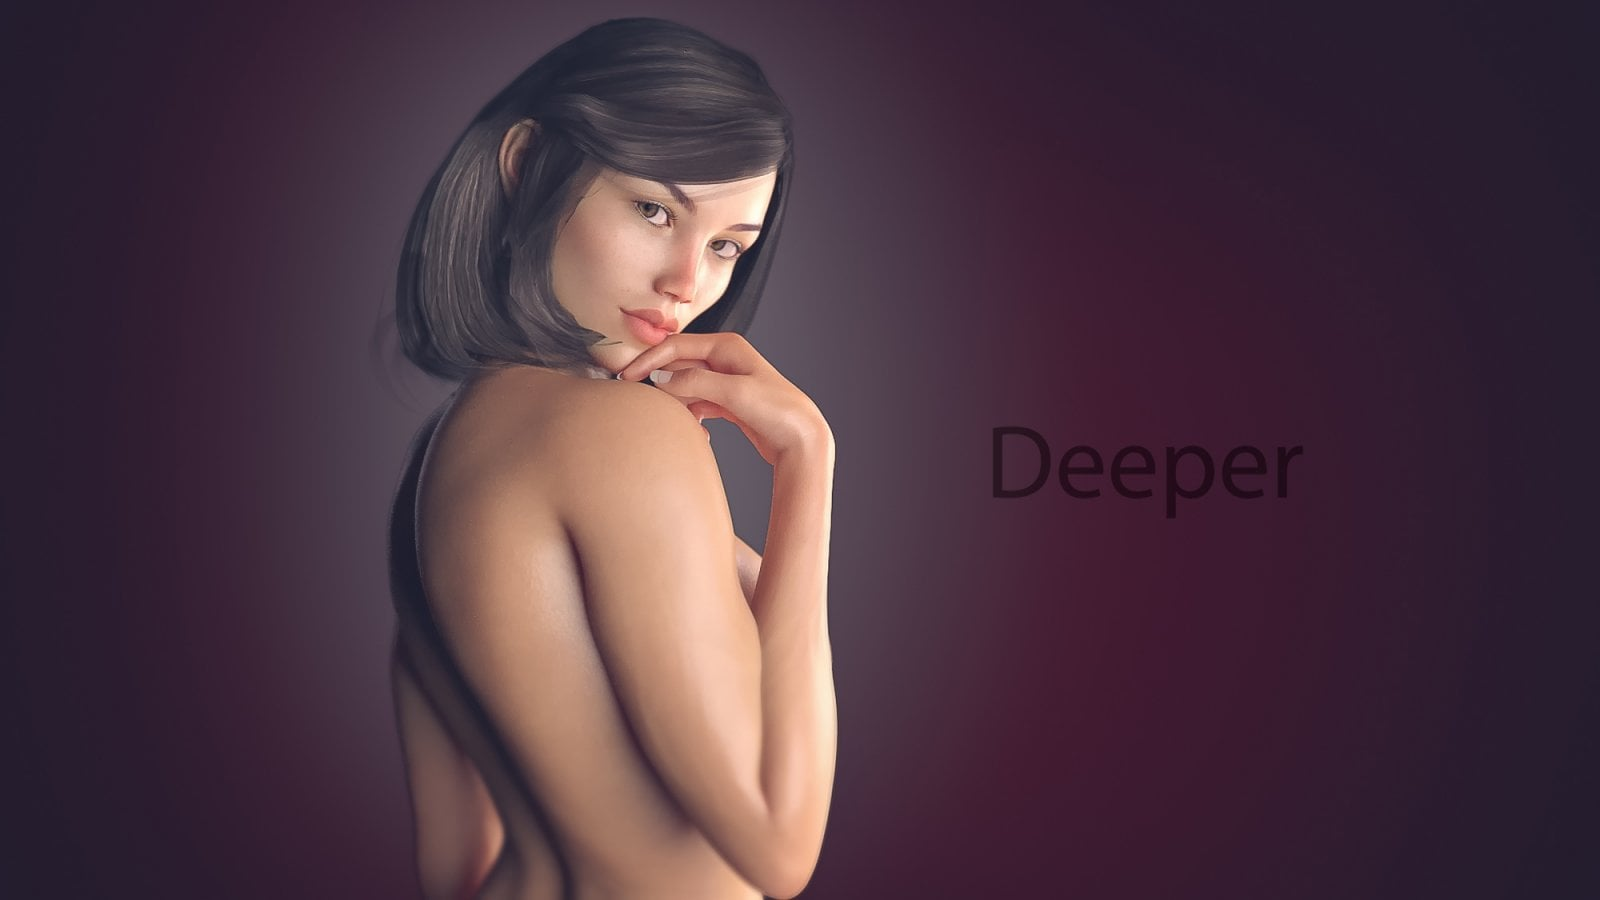 Deeper – Version 0.3011p - Best patreon family incest PC game 1